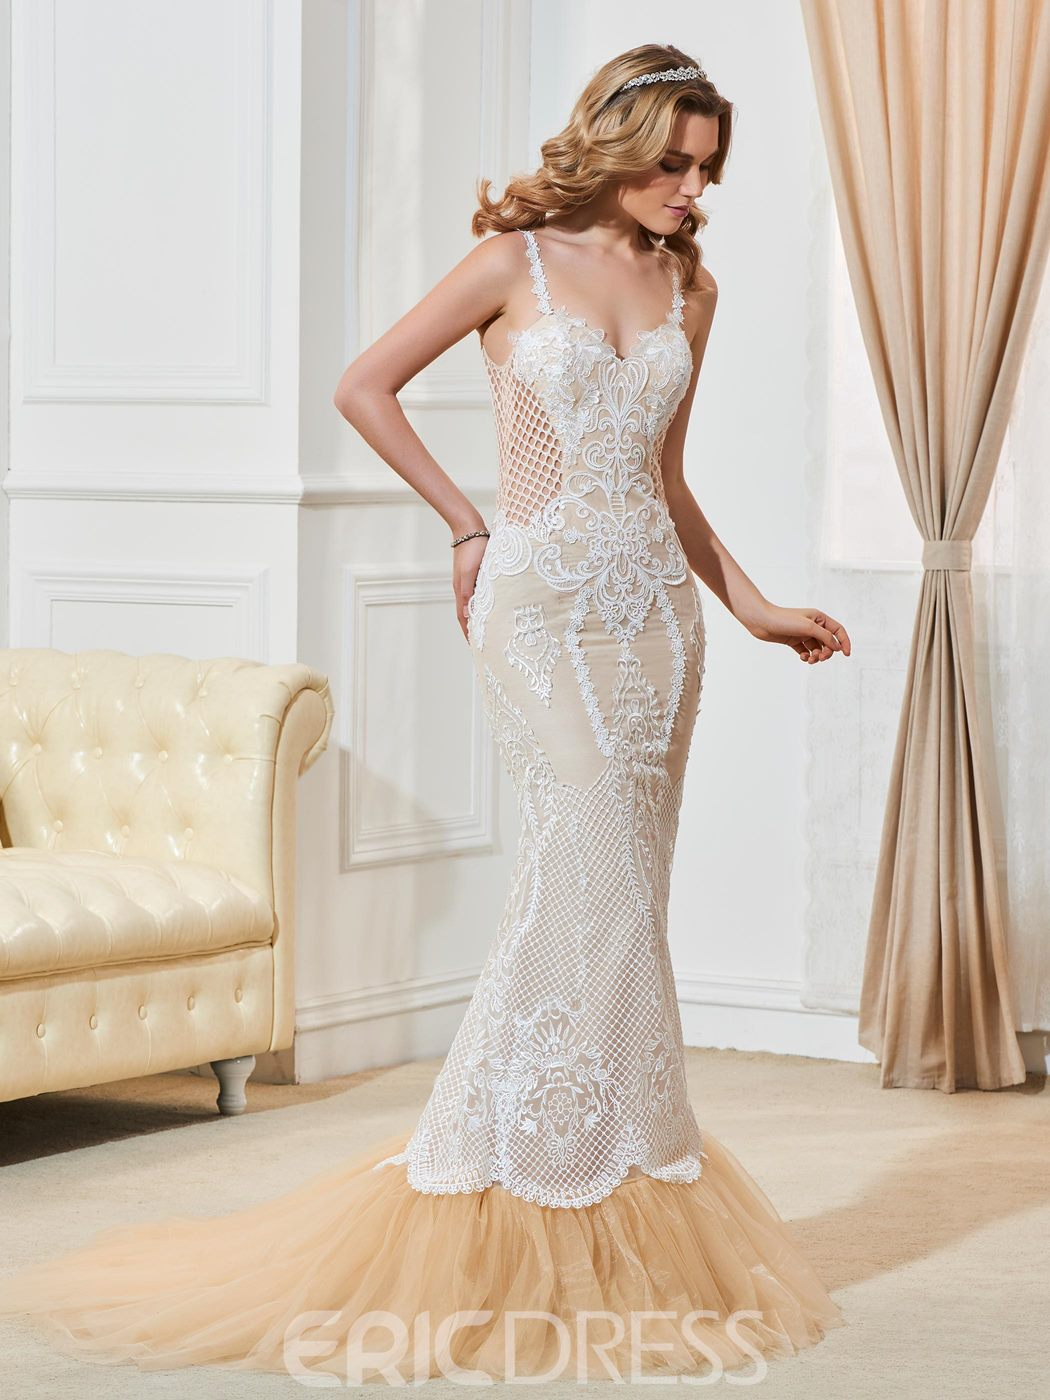 Ericdress Beautiful Spaghetti Straps Backless Mermaid Lace Wedding Dress